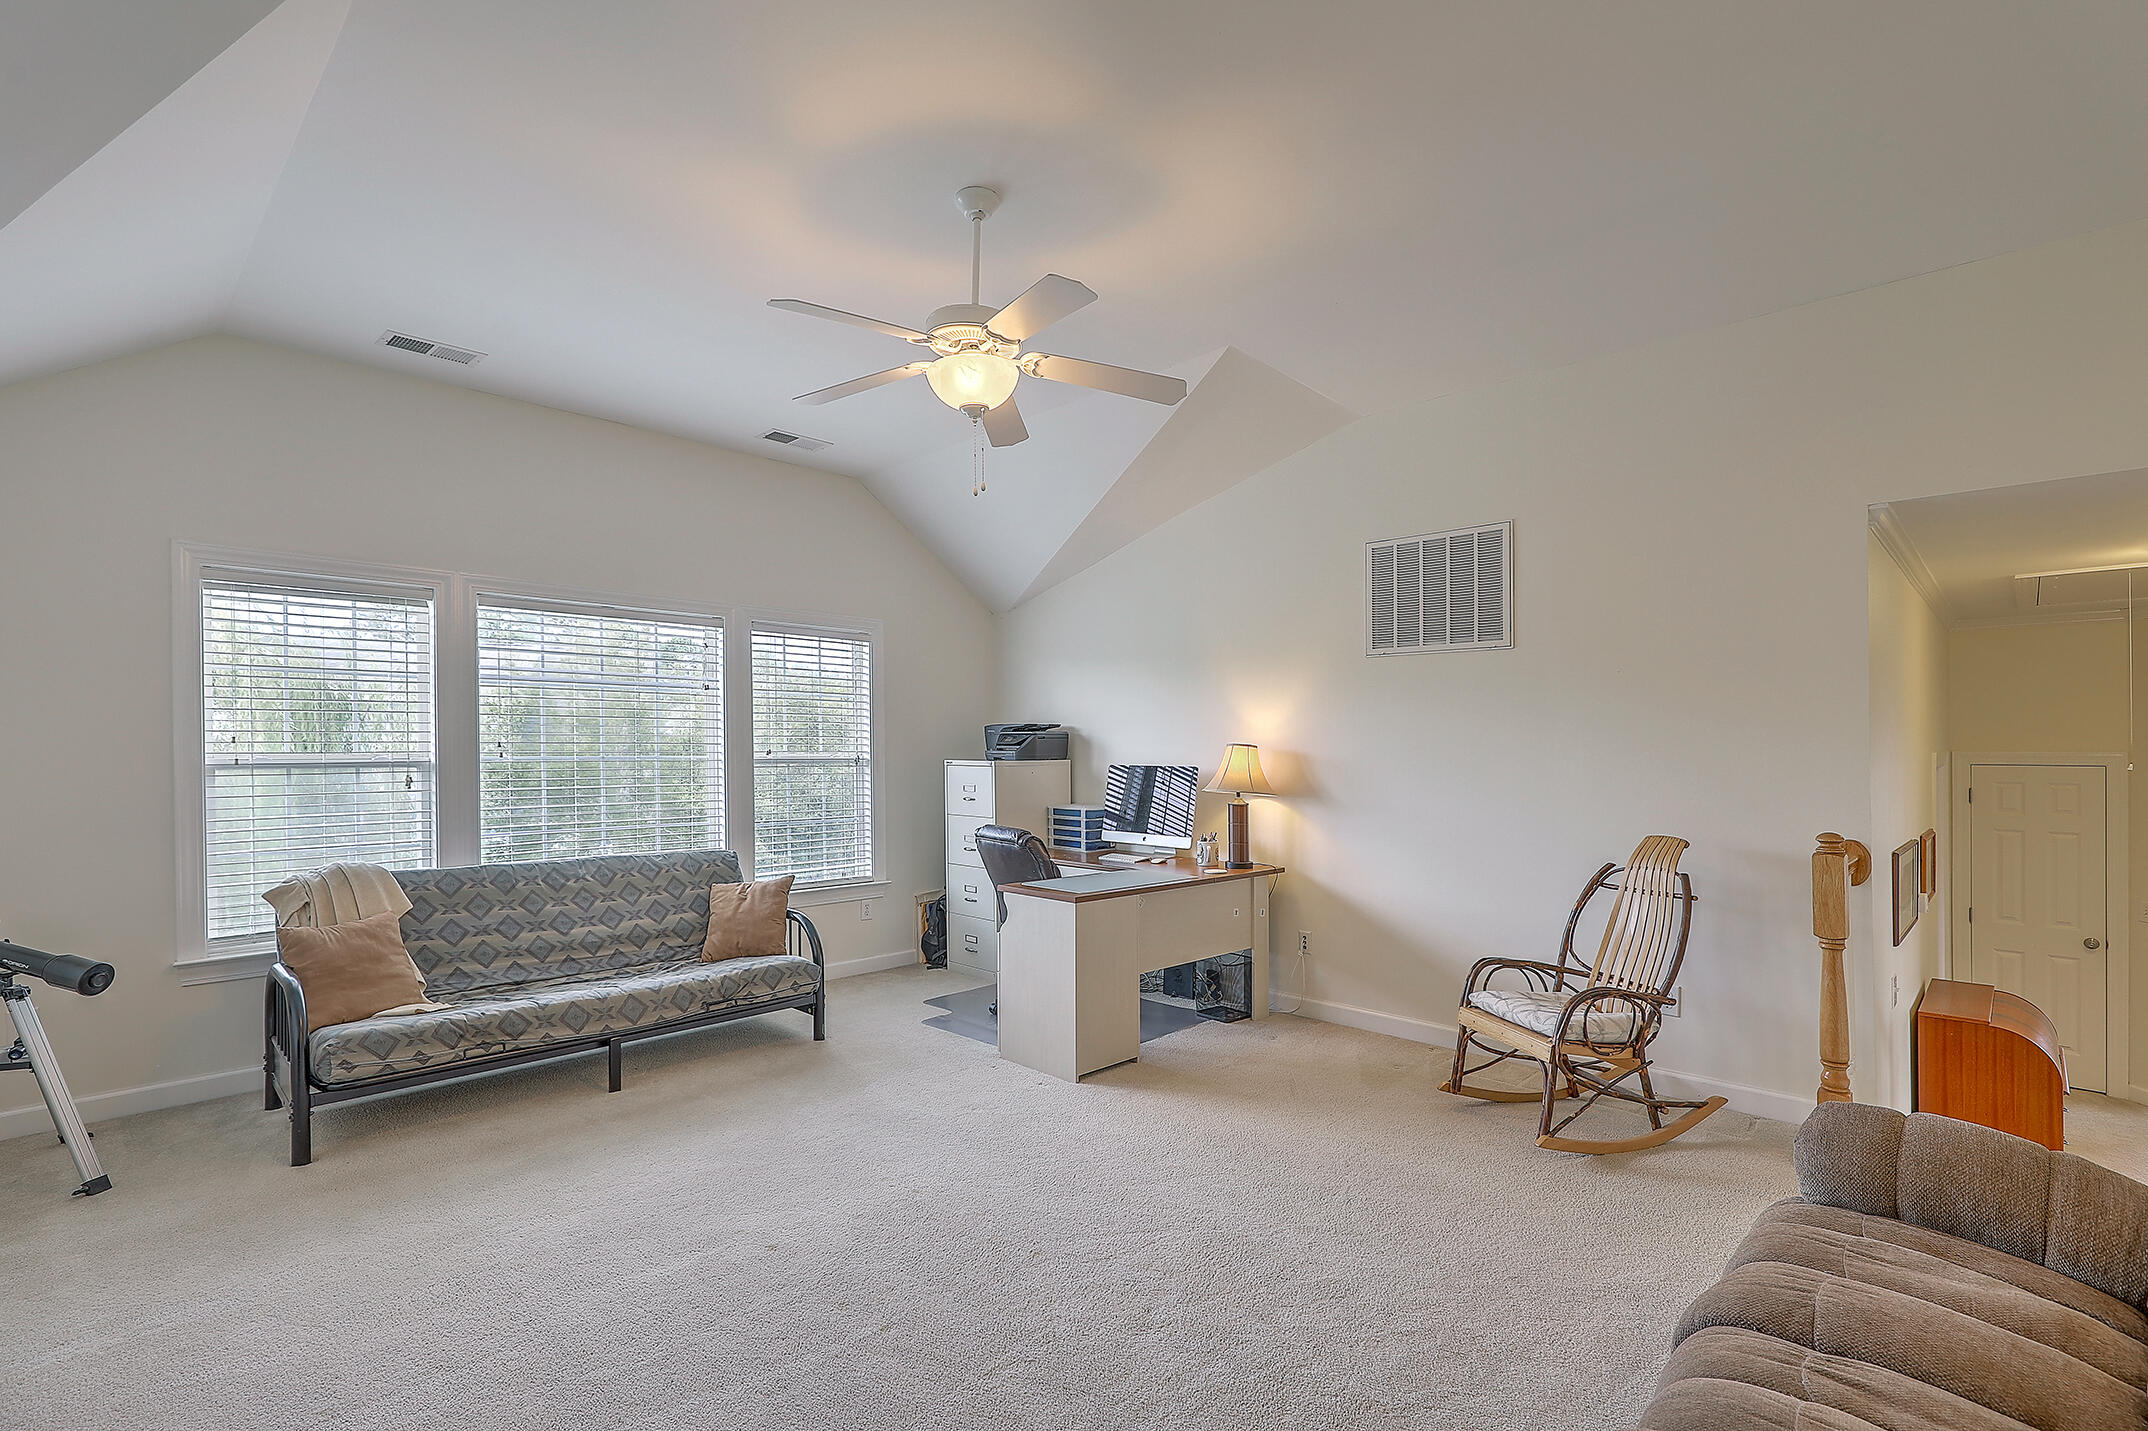 Dunes West Homes For Sale - 1704 Jewelwood, Mount Pleasant, SC - 20